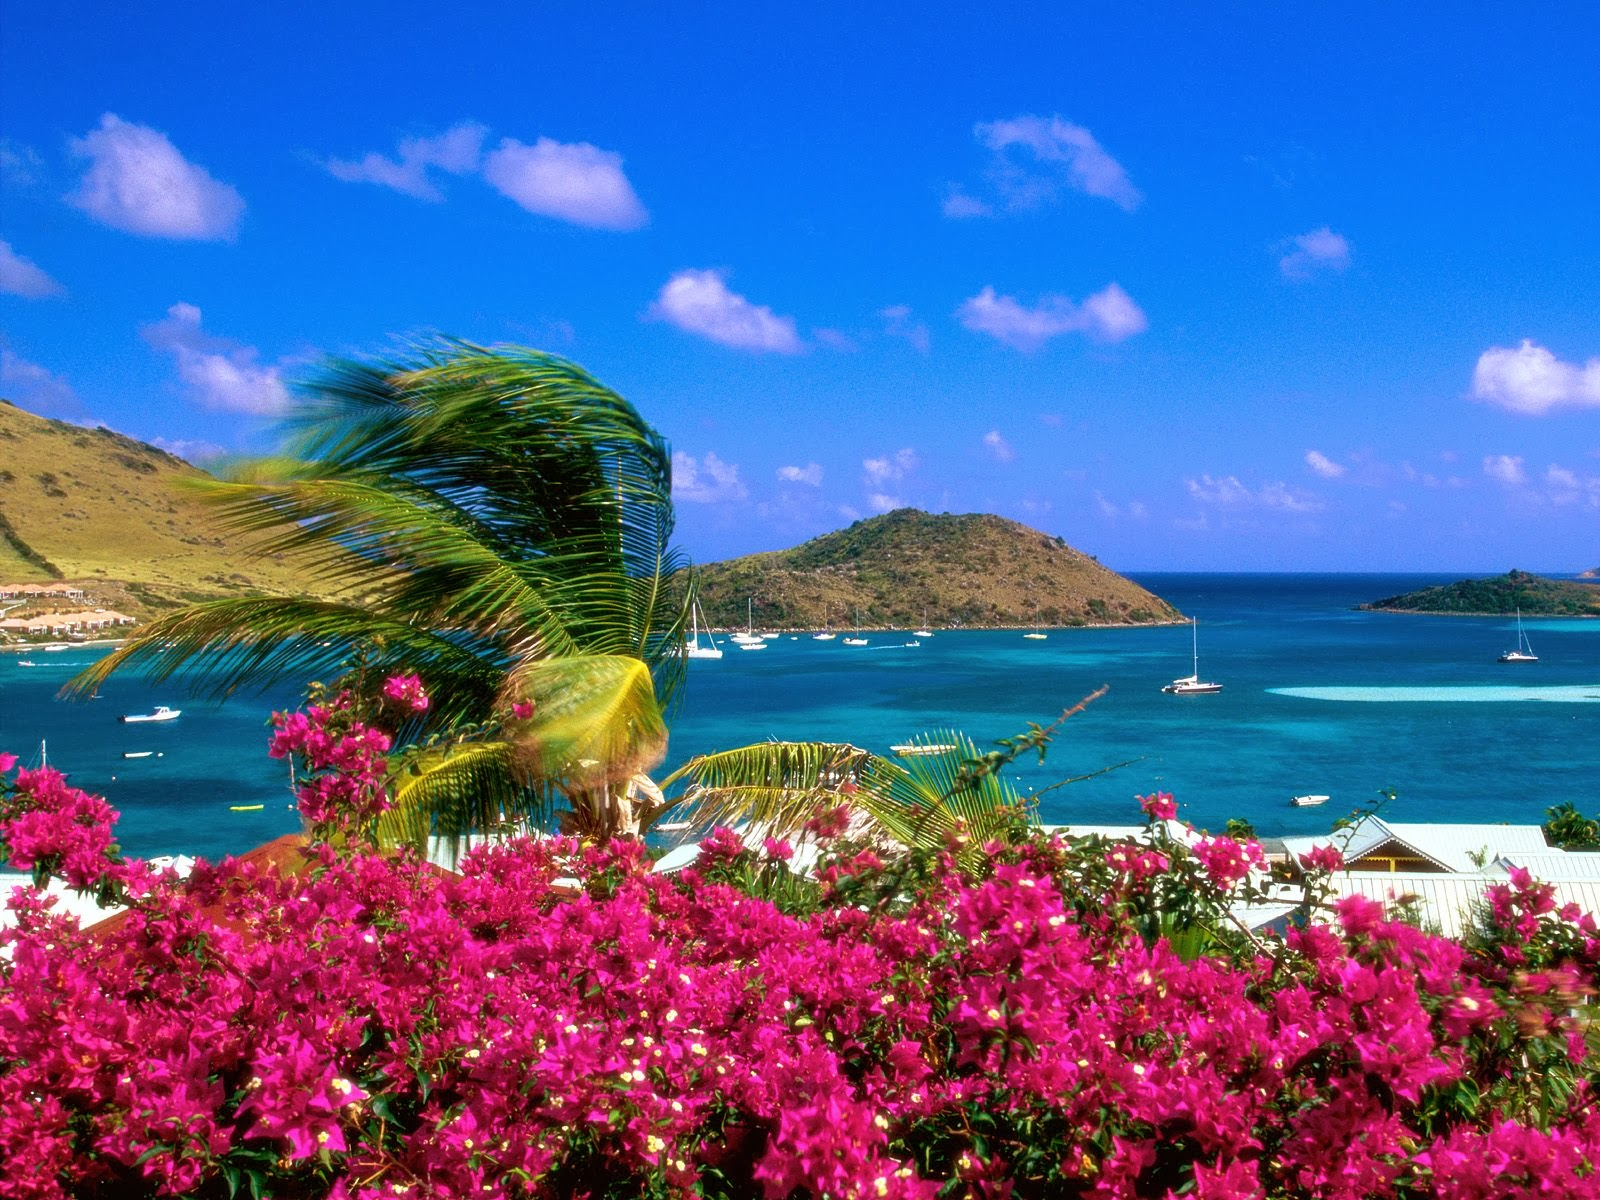 HD Beach Trees Live Wallpapers - Wallpapers Free